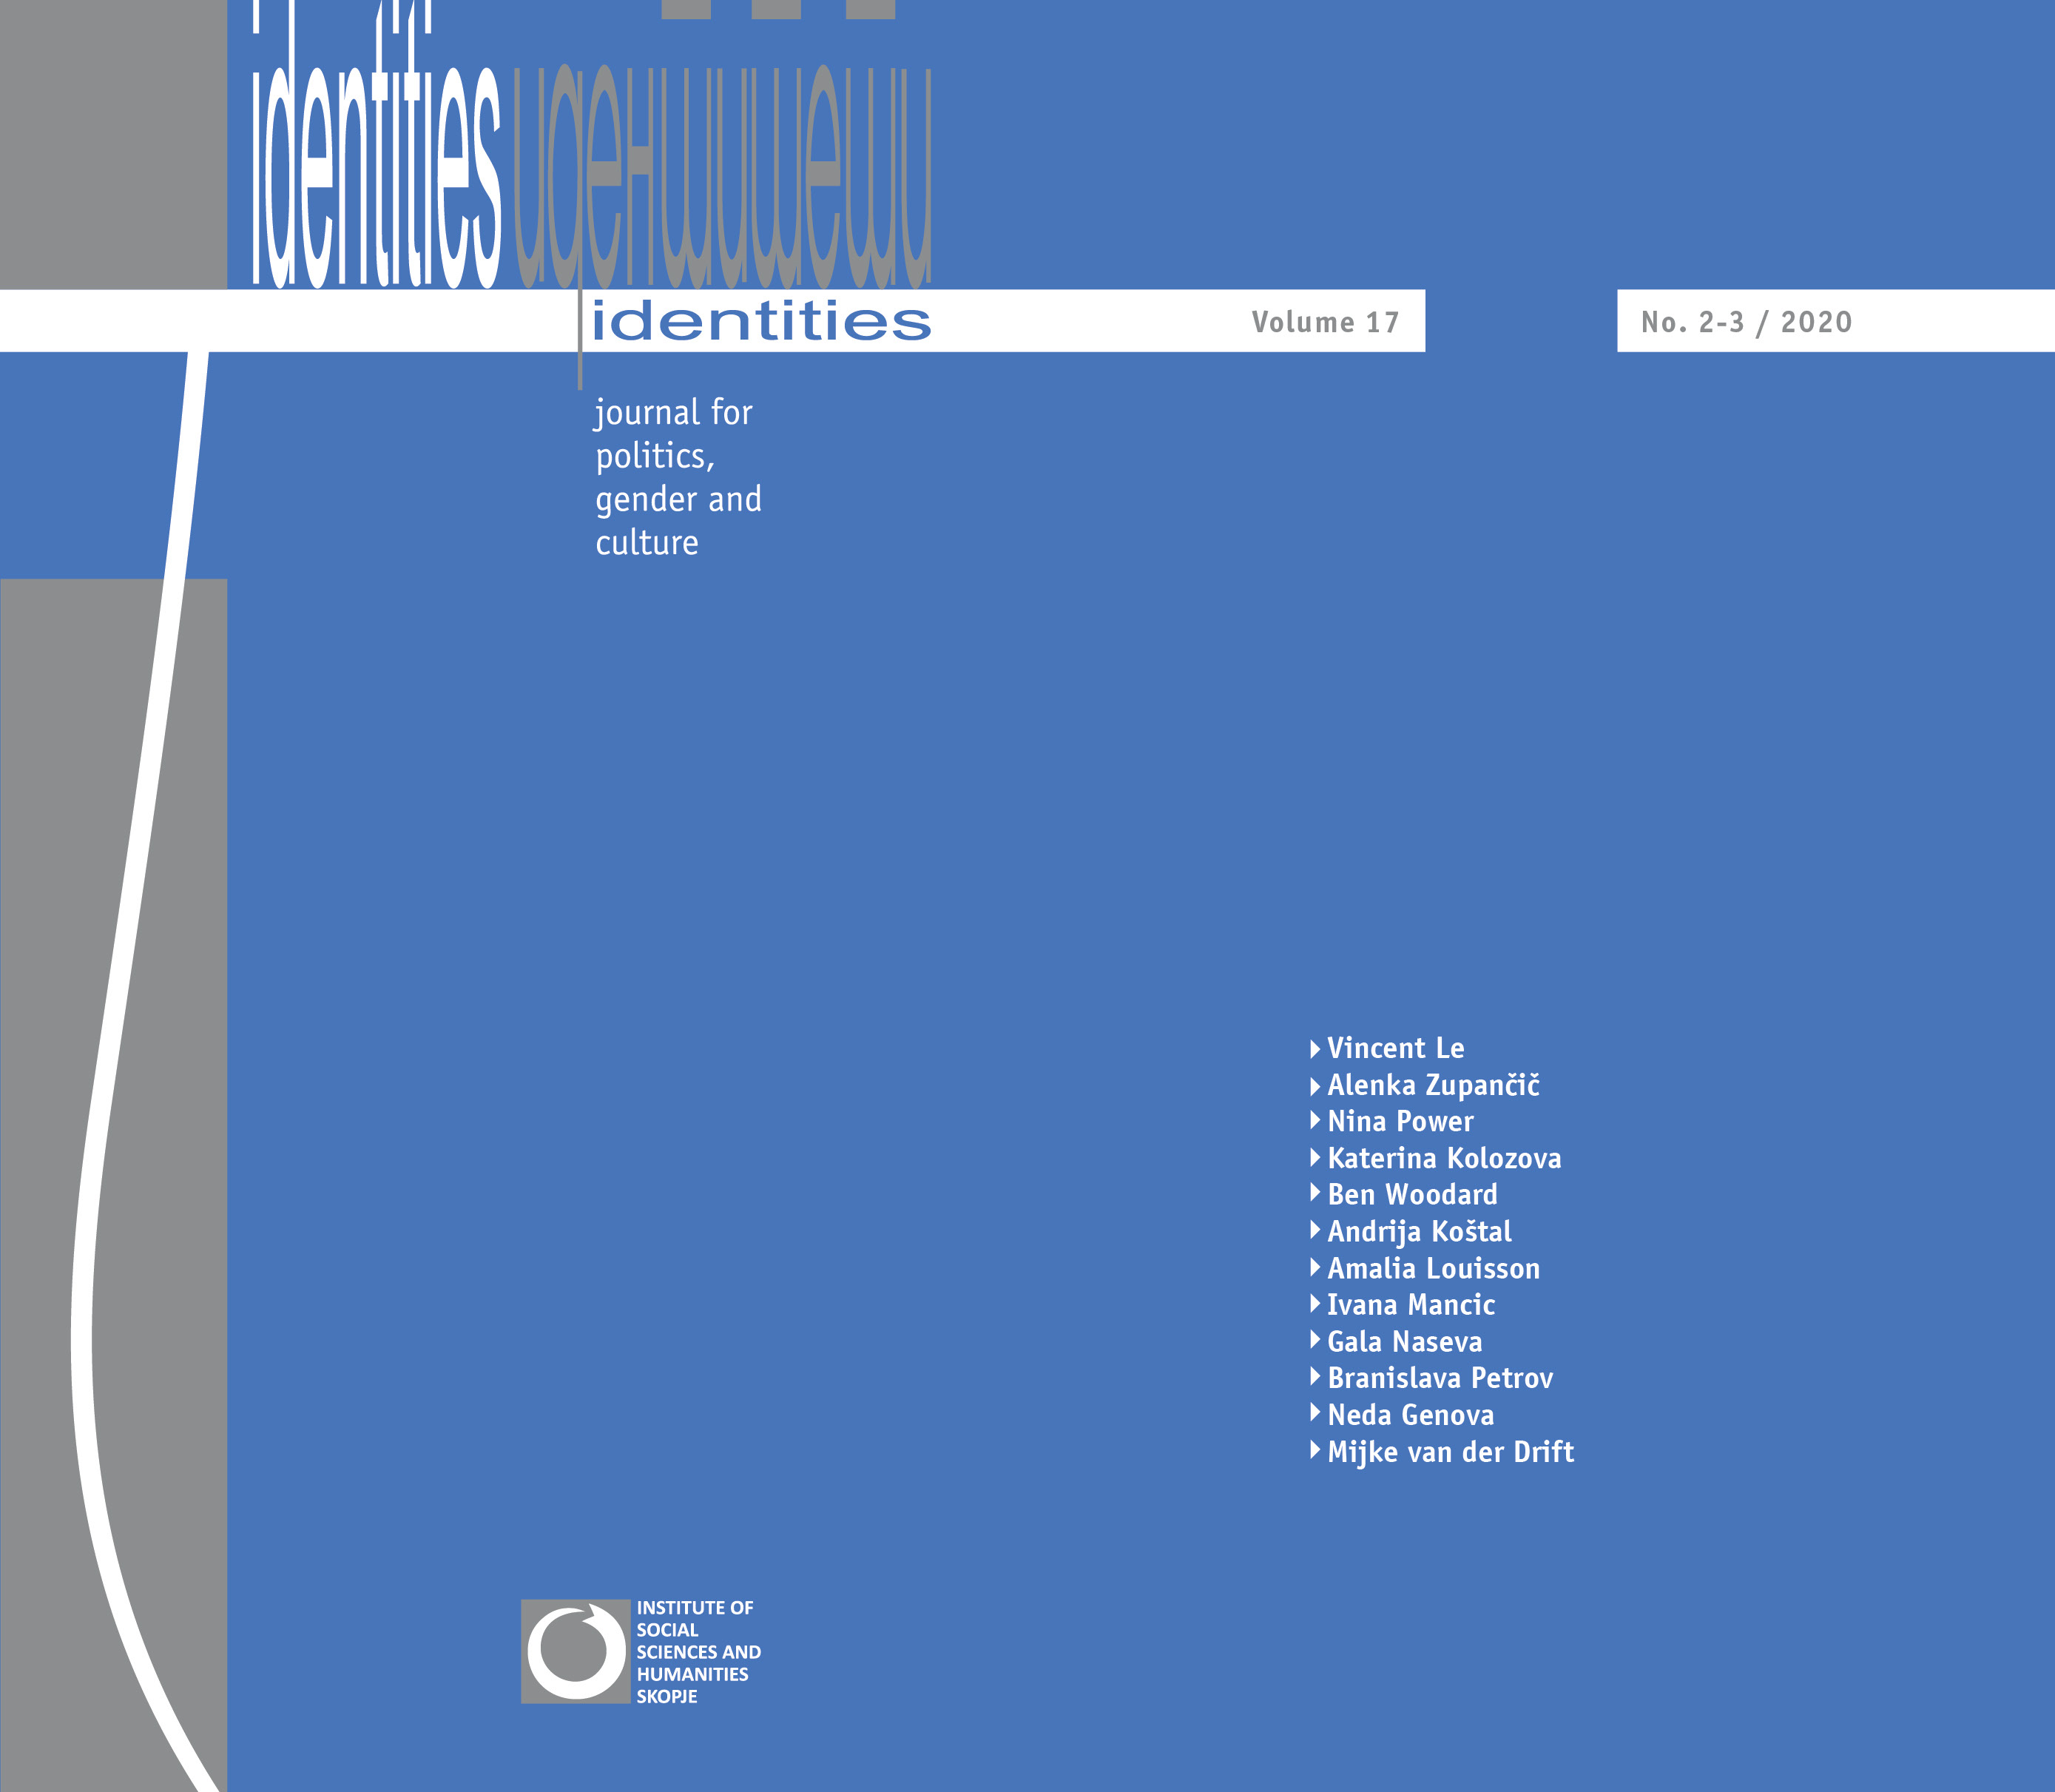 View Vol. 17 No. 2-3 (2020): Vol. 17, No. 2-3 (Winter 2020) - Issue No. 33-34 | Topic: Xenofeminism and Other Forms of Realist and Materialist Feminism: A Vantage Point of a Radically Novel Politics